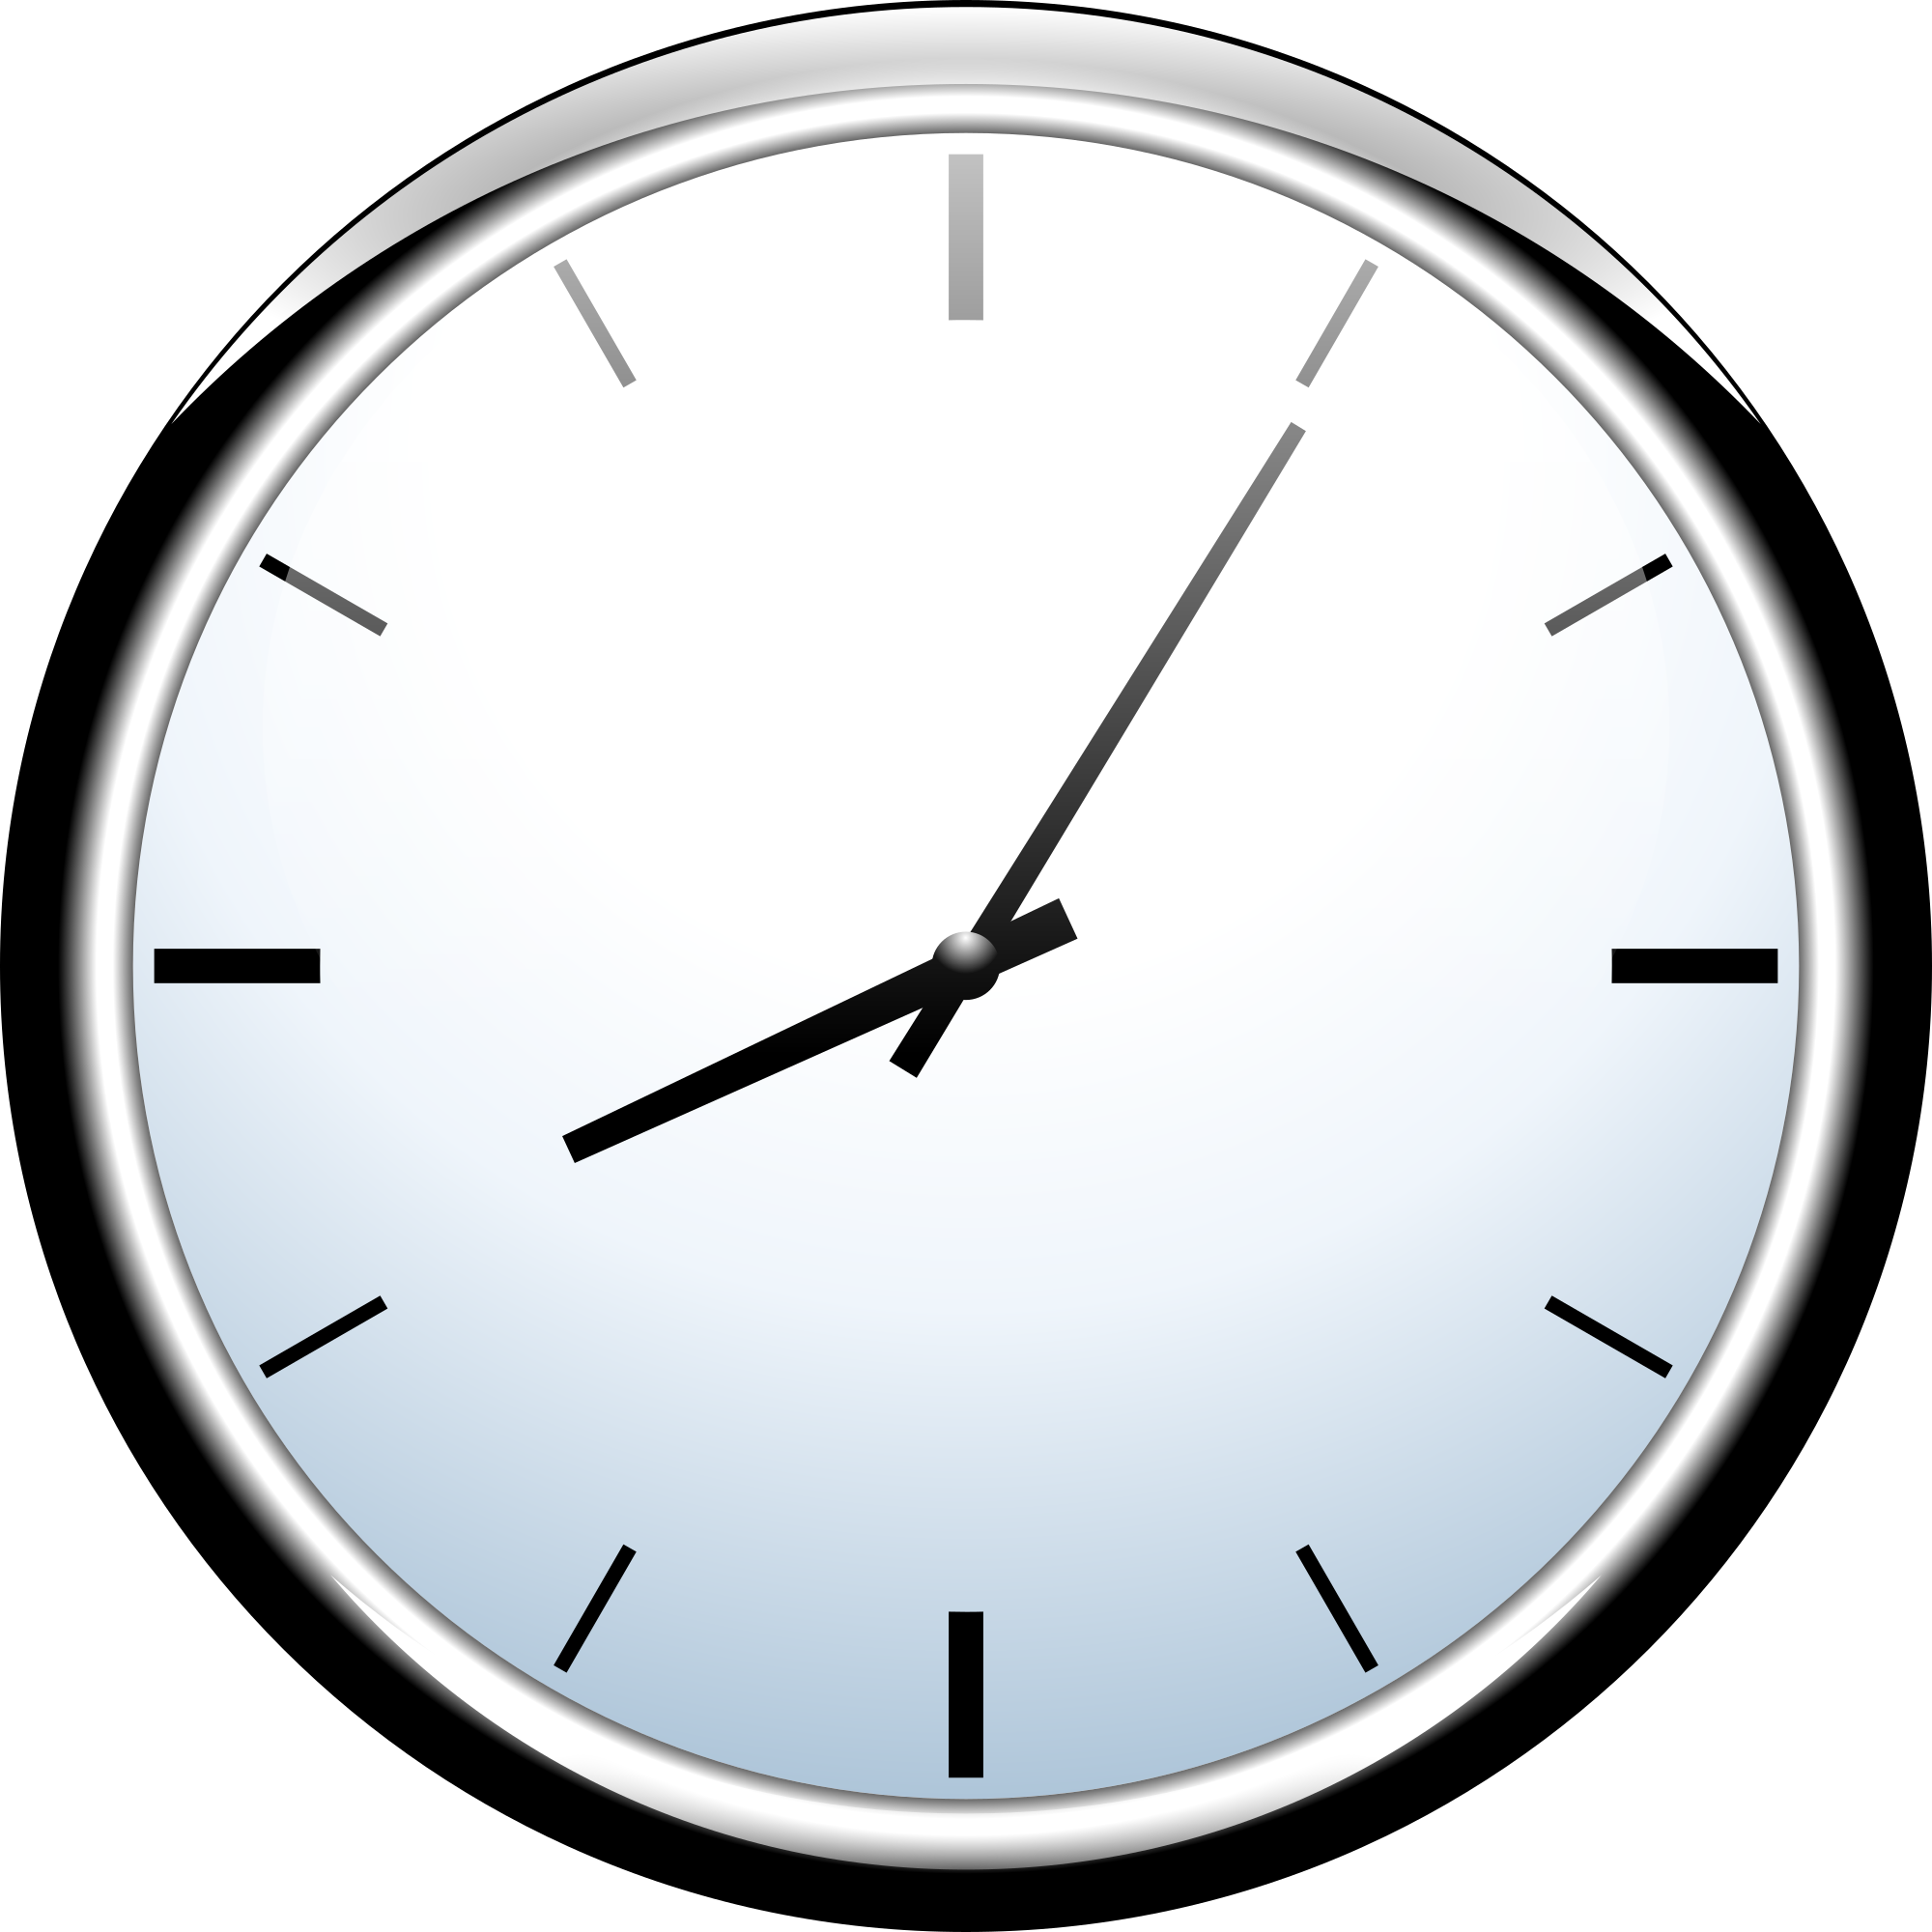 Free white wall clock clipart clipart image.